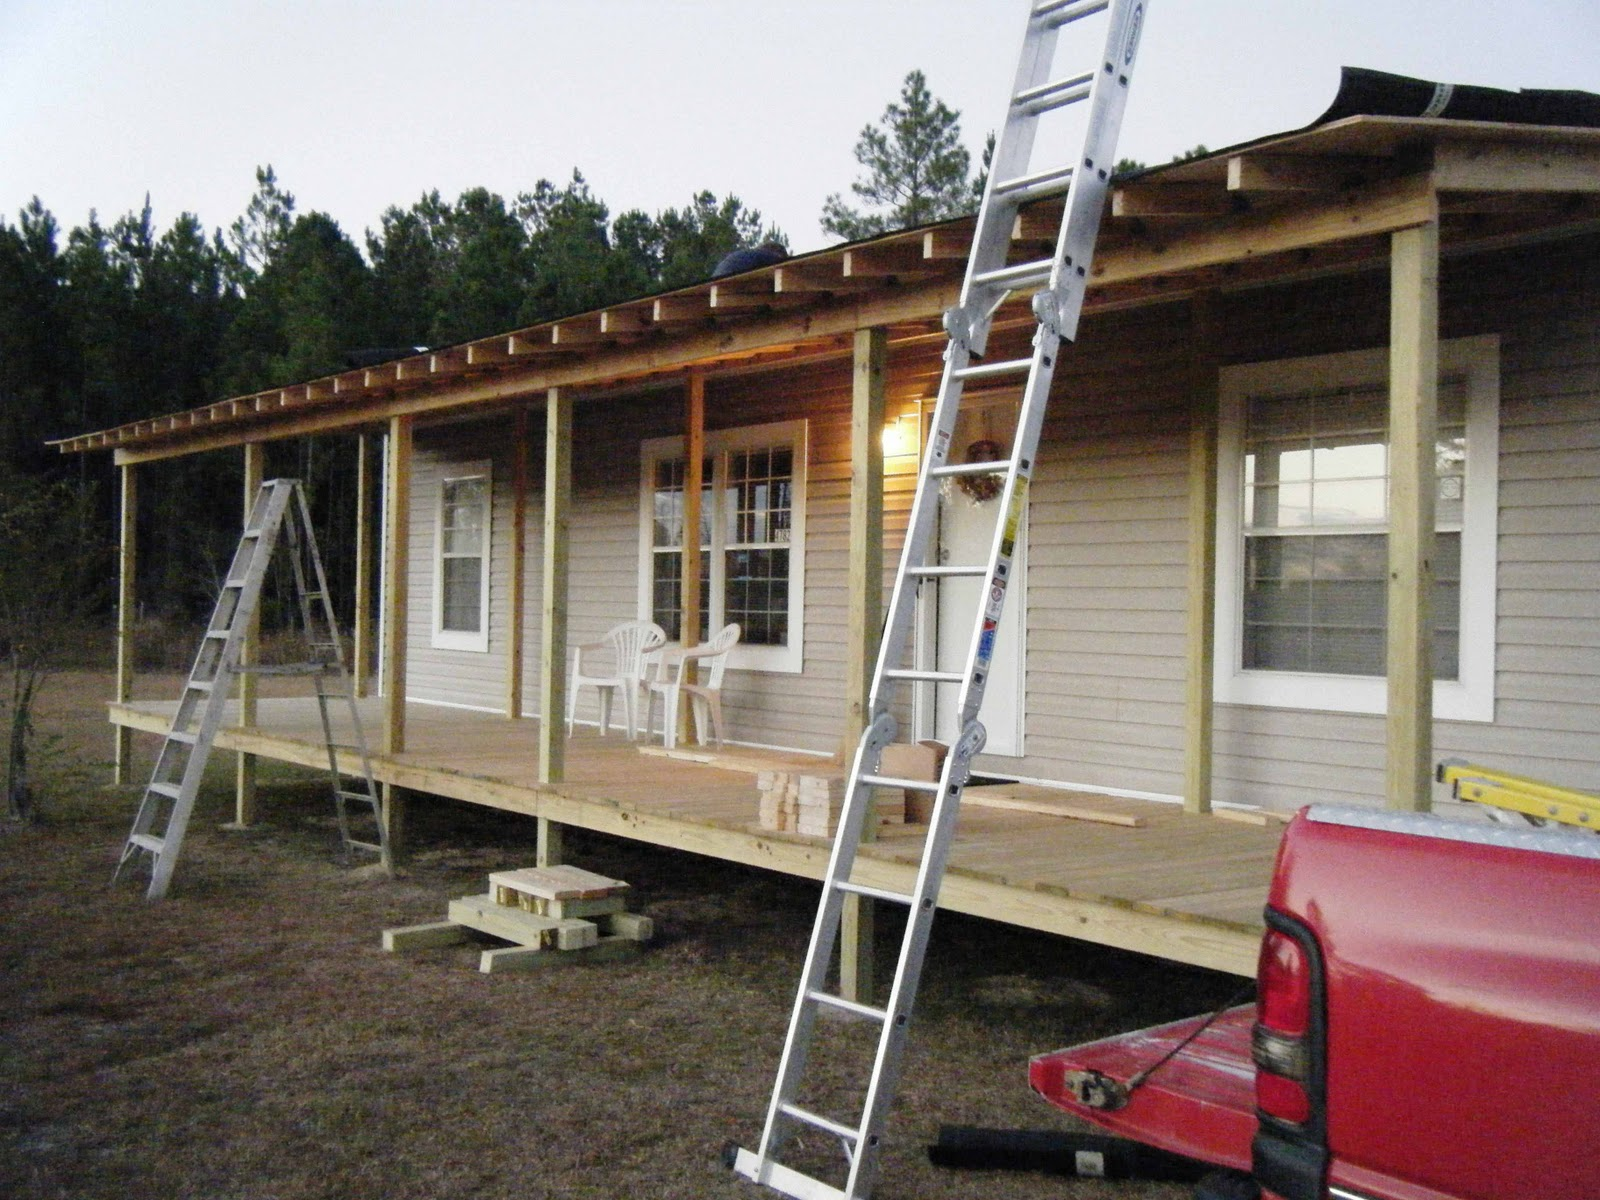 Inspiring Home Design Ideas with Mobile Home Porches: Back Porch Ideas For Houses | Mobile Home Steps Decks | Mobile Home Porches